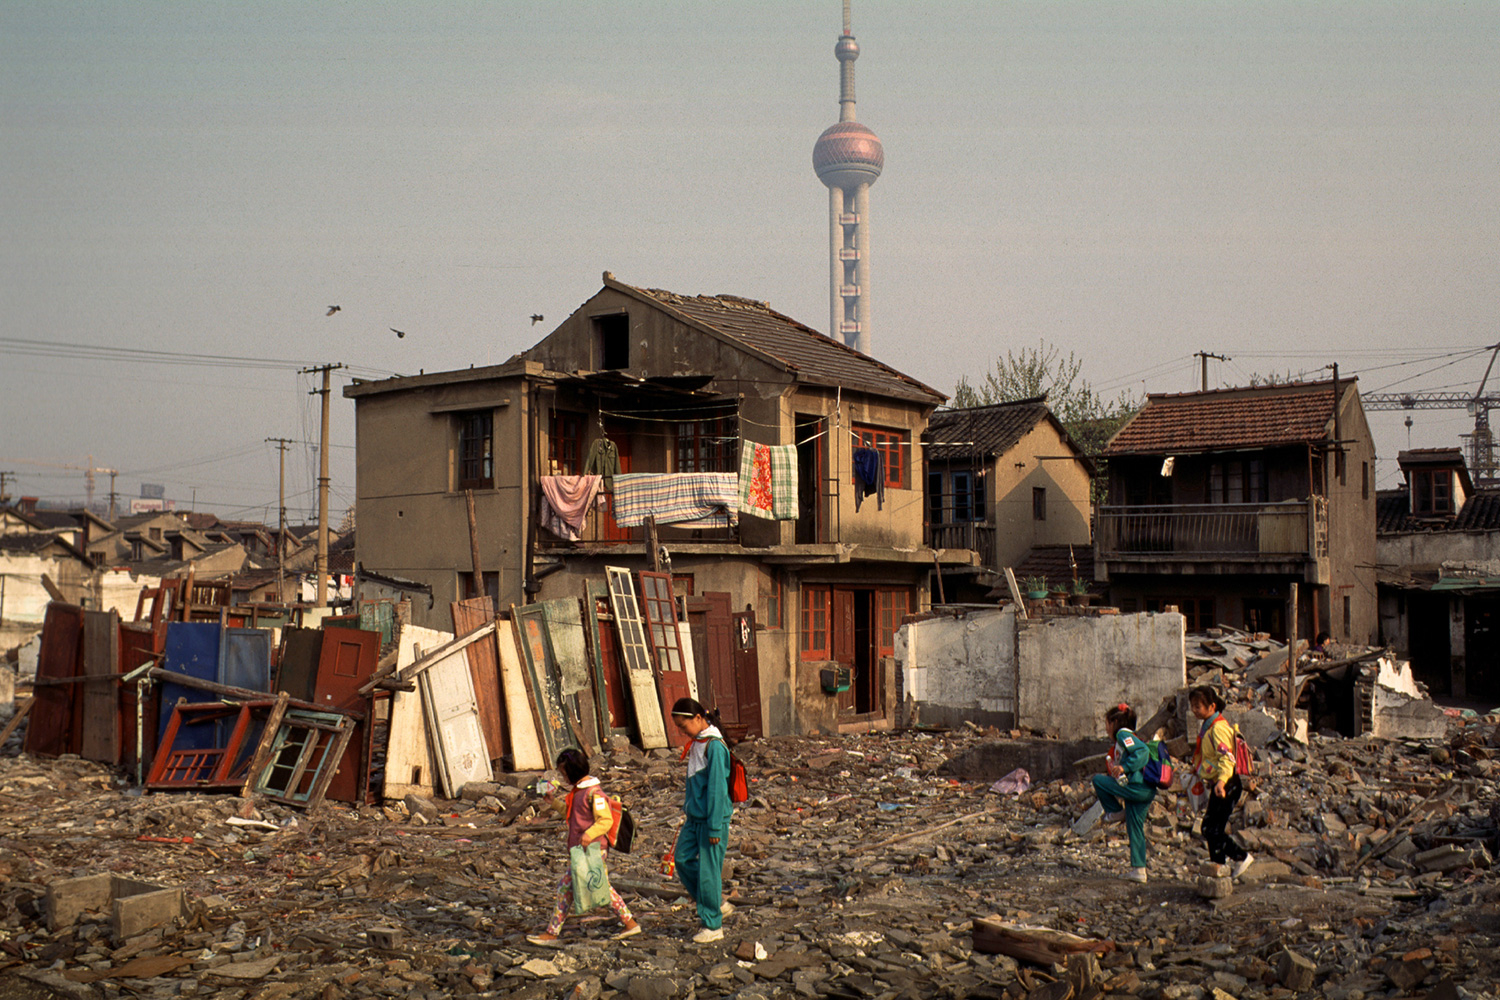 On their way to school, children pass through the rubble of demolished homes in their neighborhood in Lujiazui, 1996.